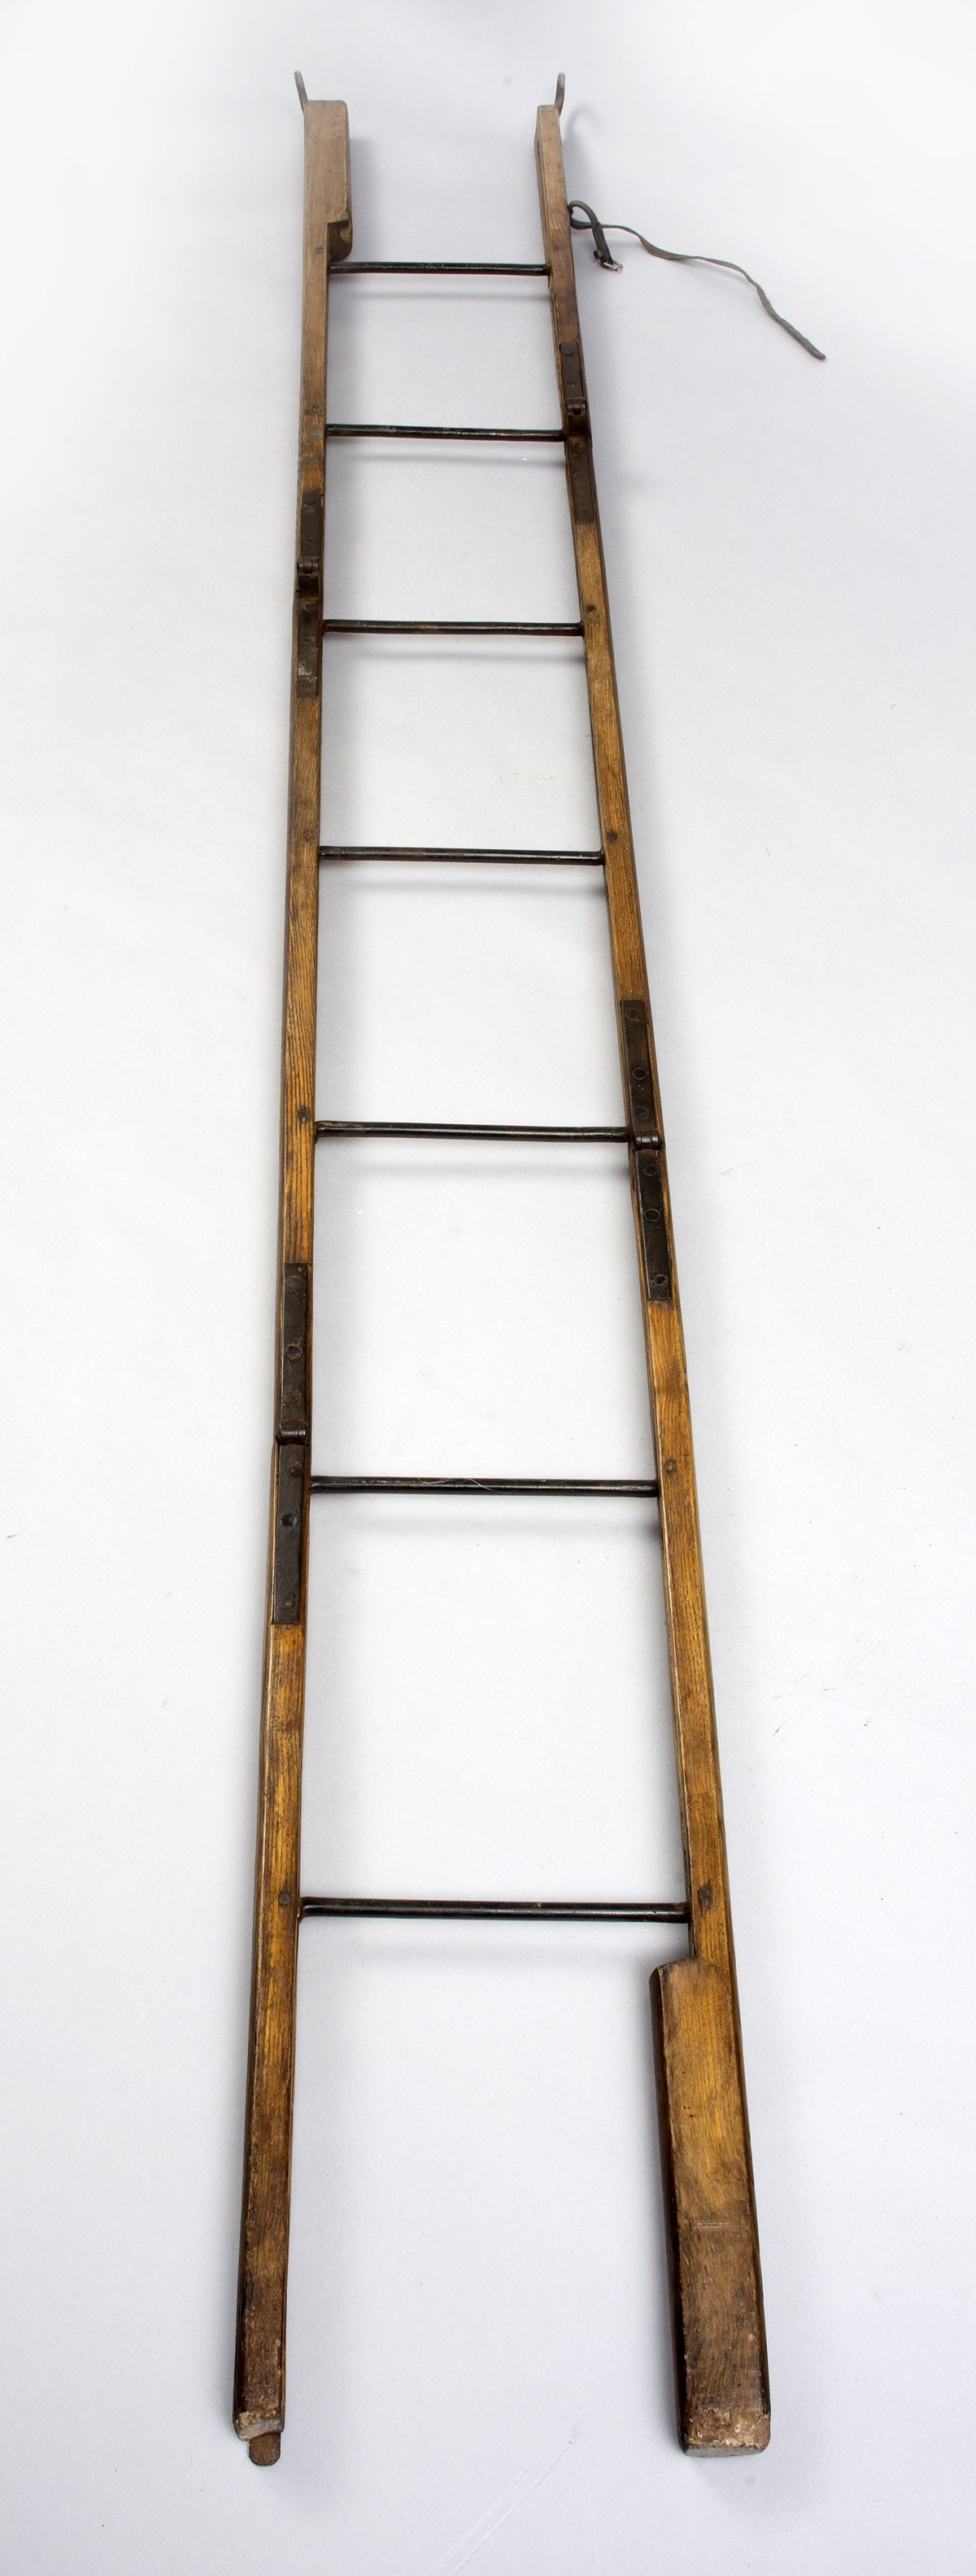 Georgian Ash And Iron Hinged Folding Ladder Antique Ladders